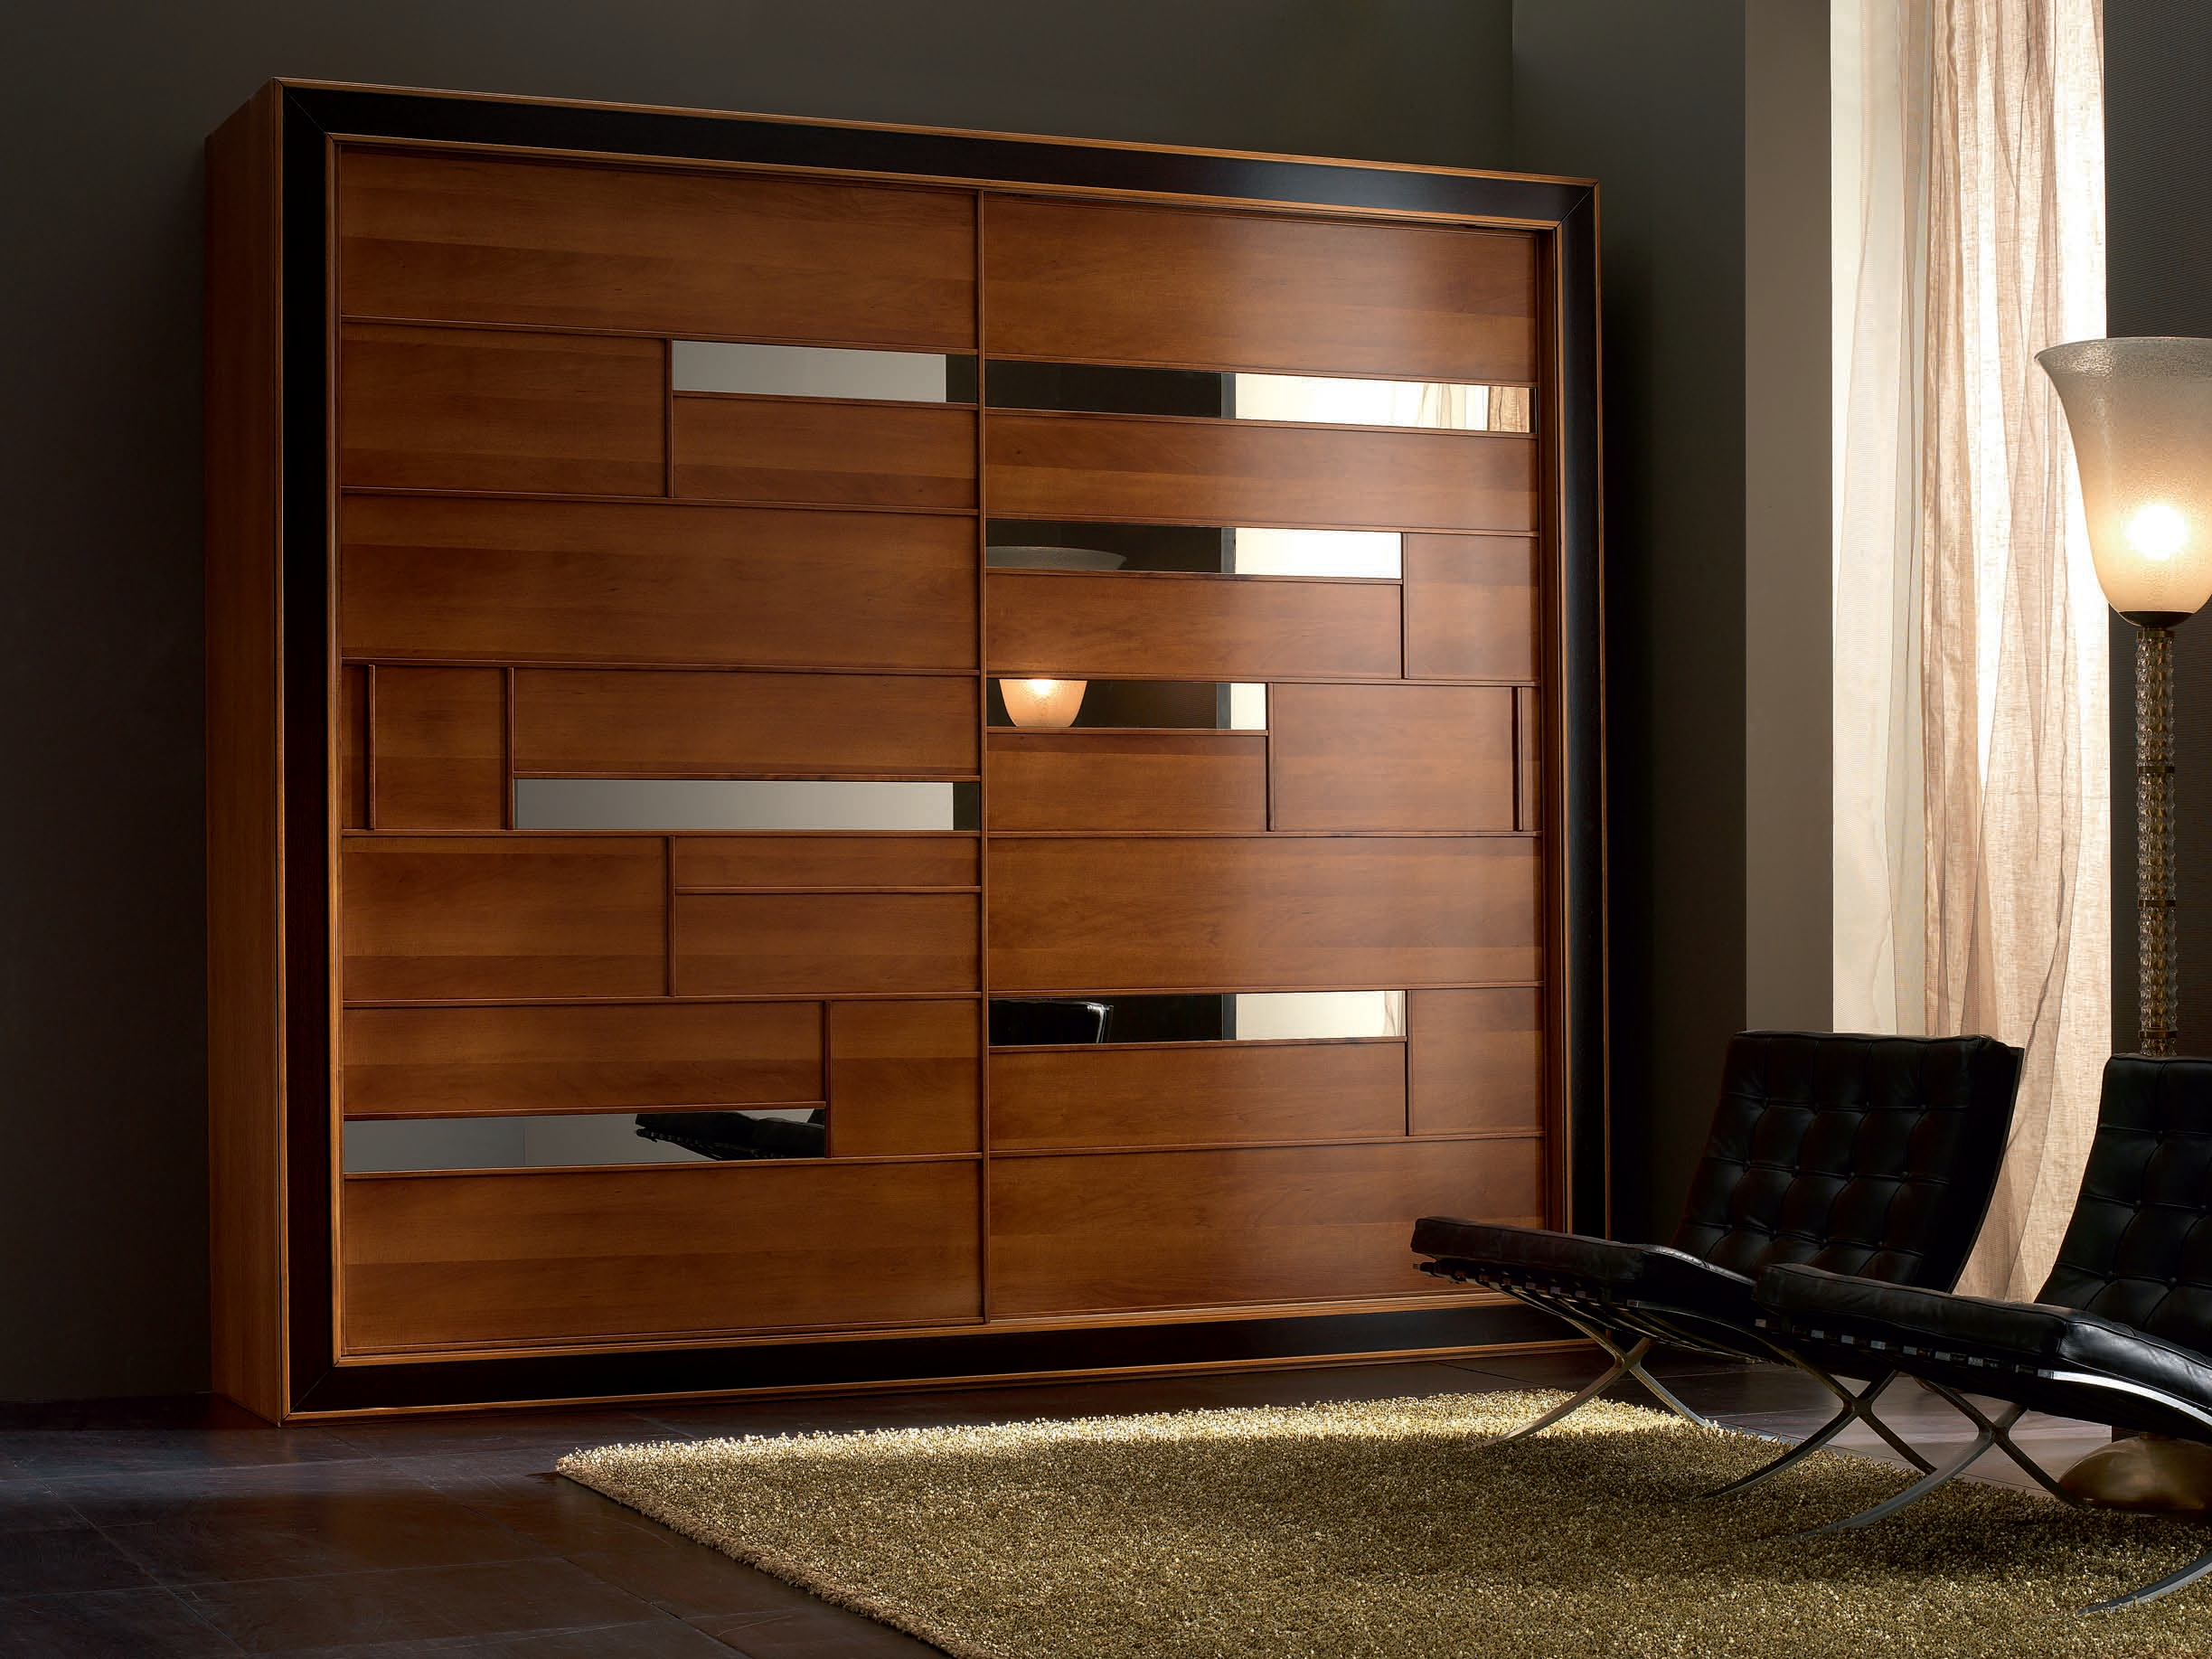 Elettra night solid wood wardrobe by cantiero for Furniture tipoi design